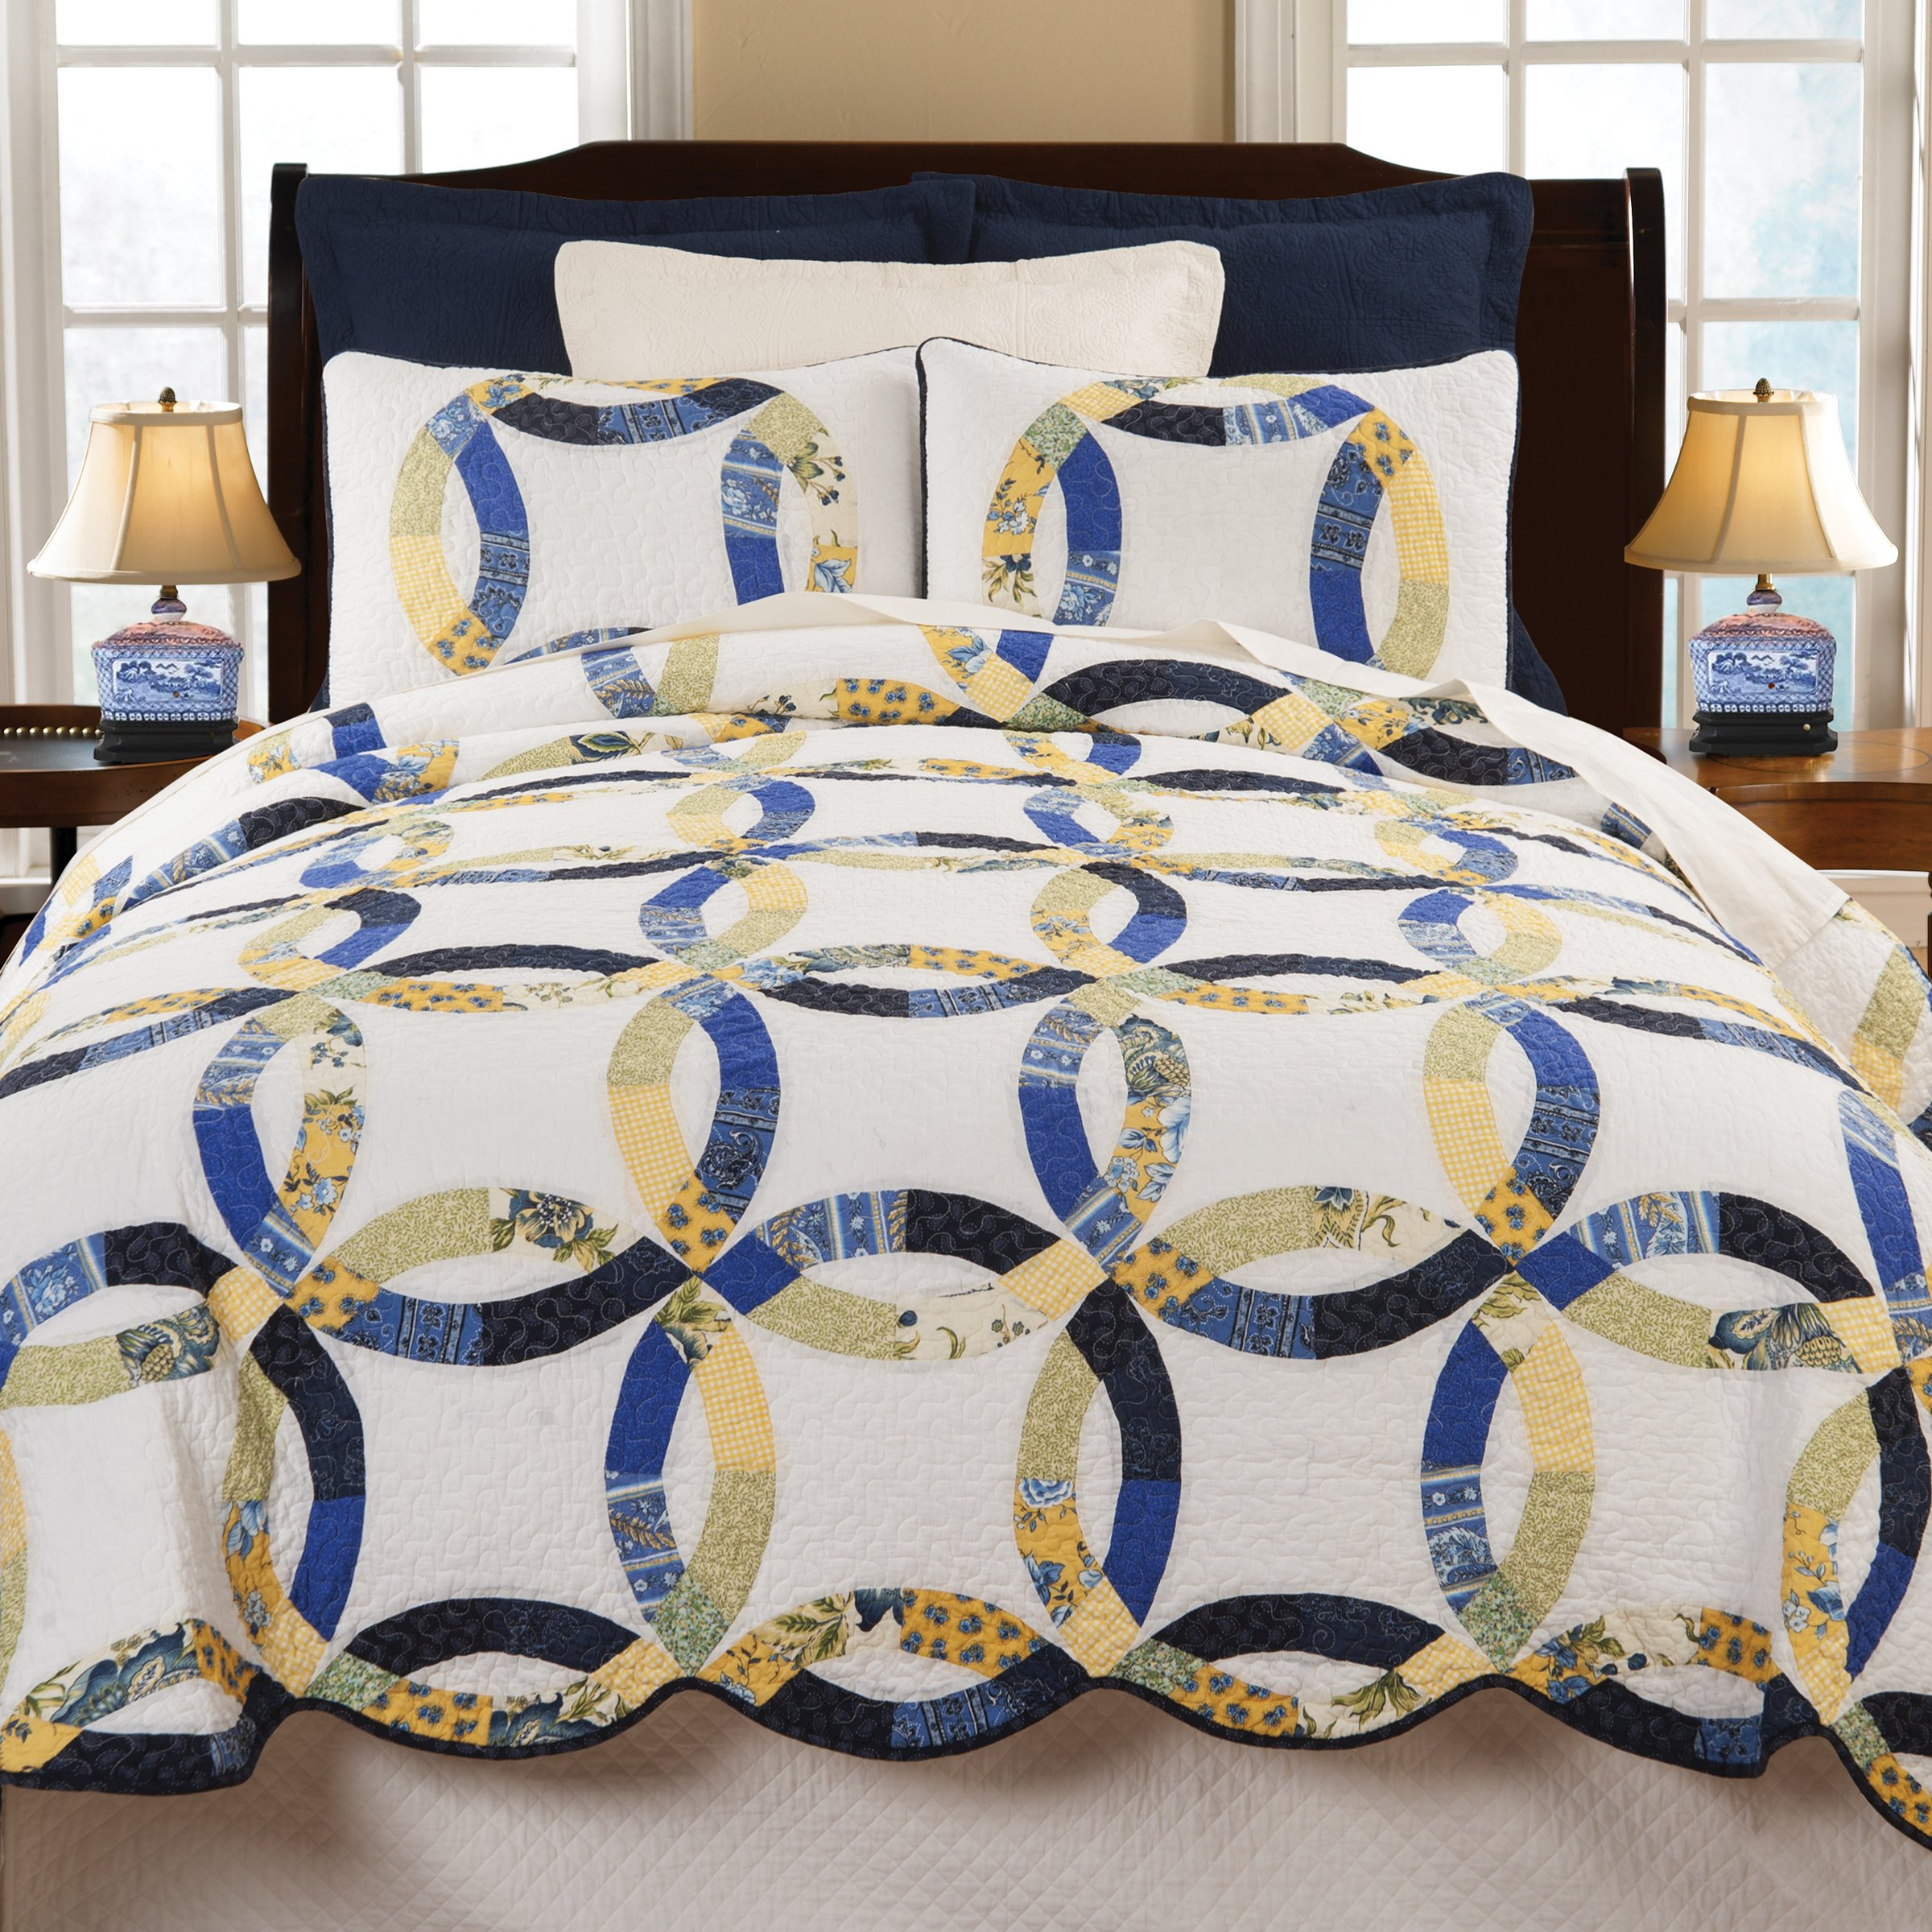 Provence Wedding Ring K Quilt Set by C&F Home